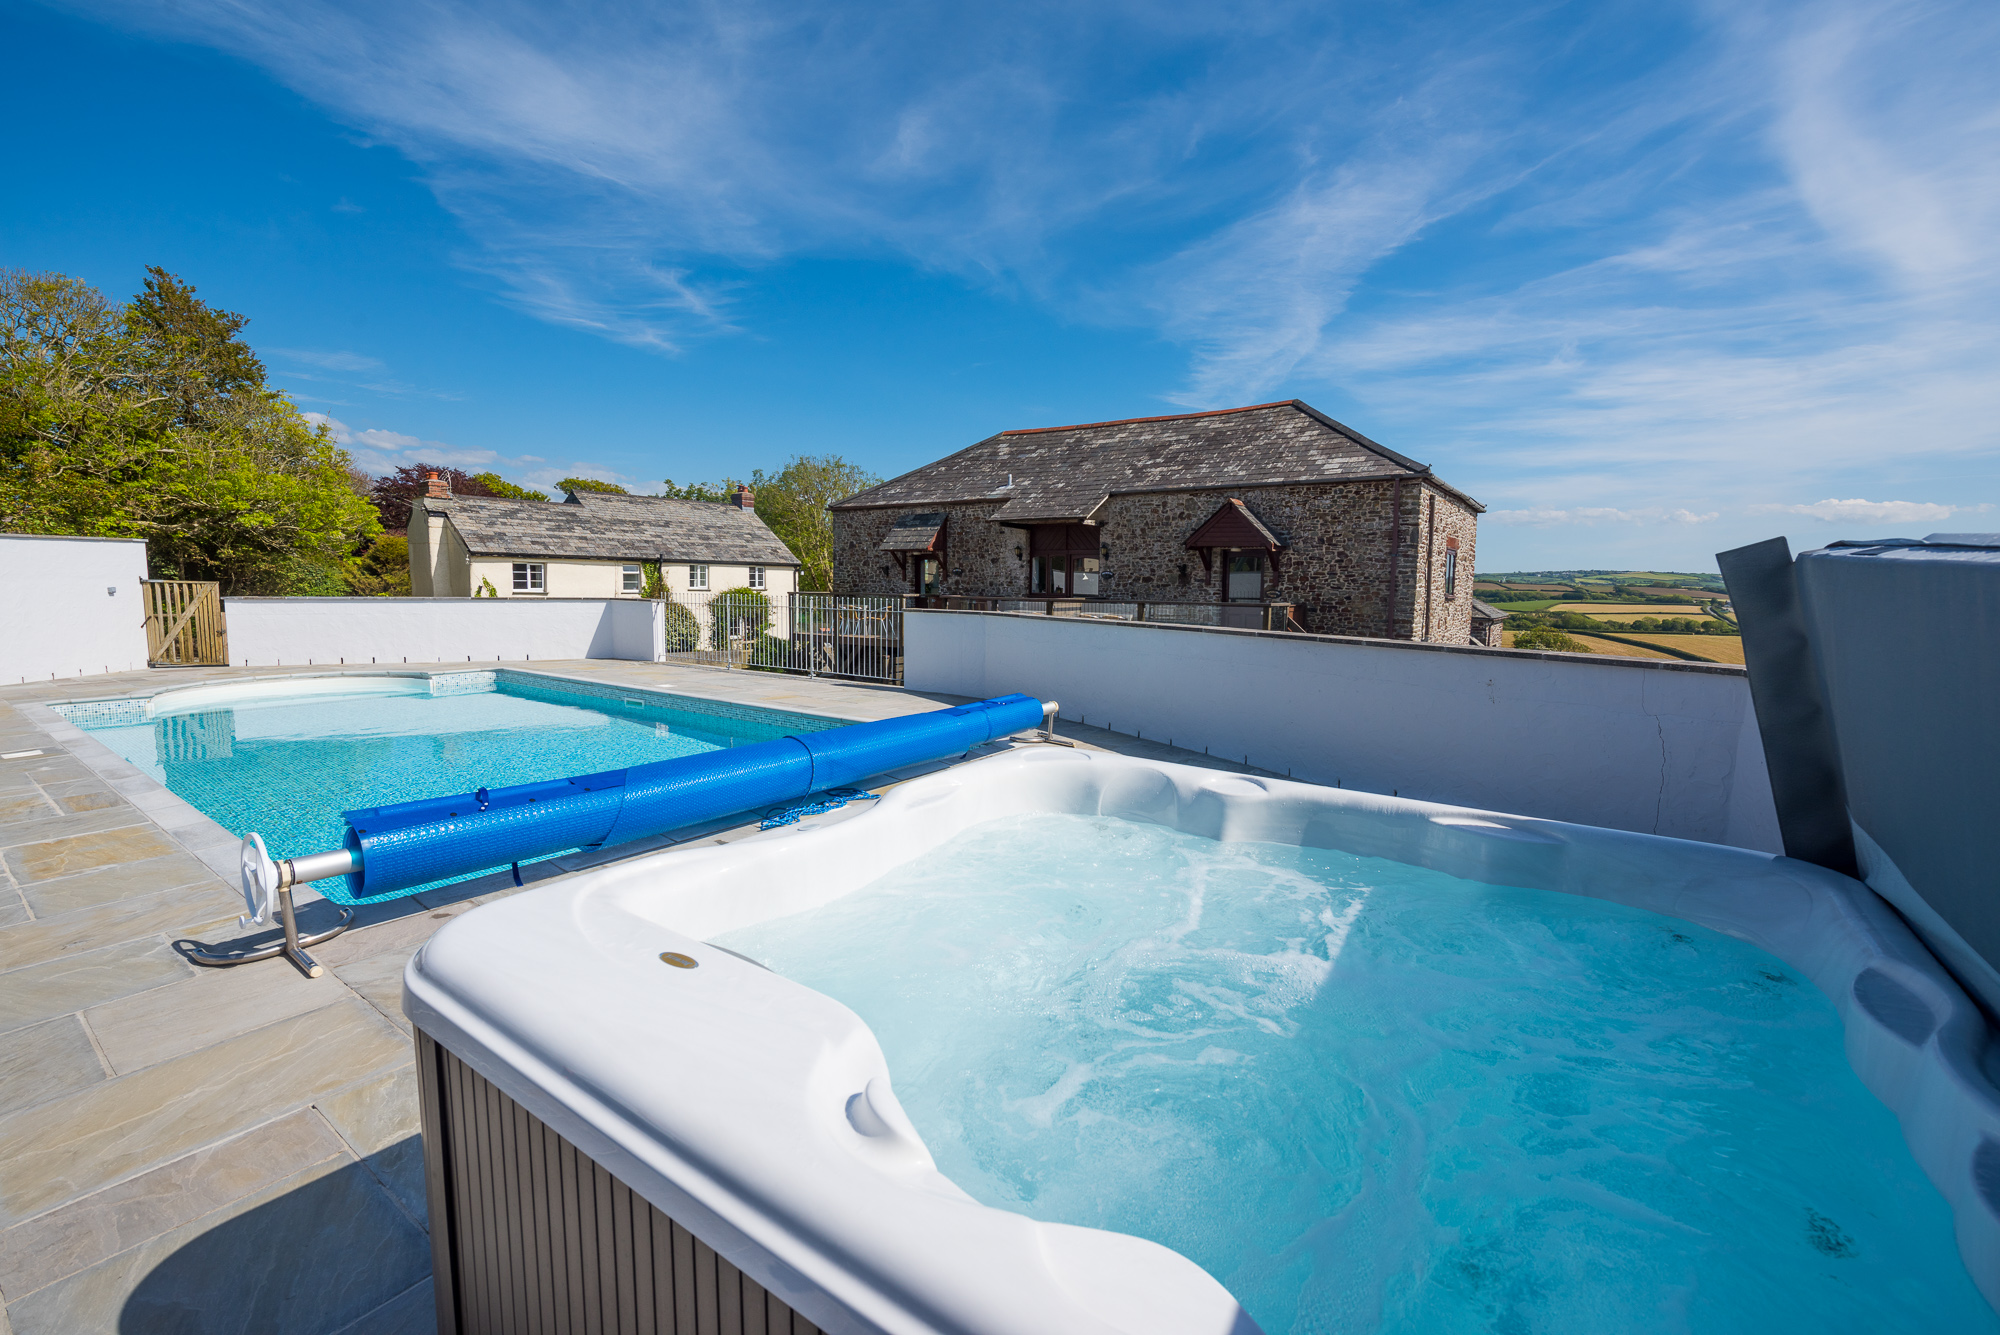 Our heated outdoor pool is open Easter-September. Our hot tub is open all year.